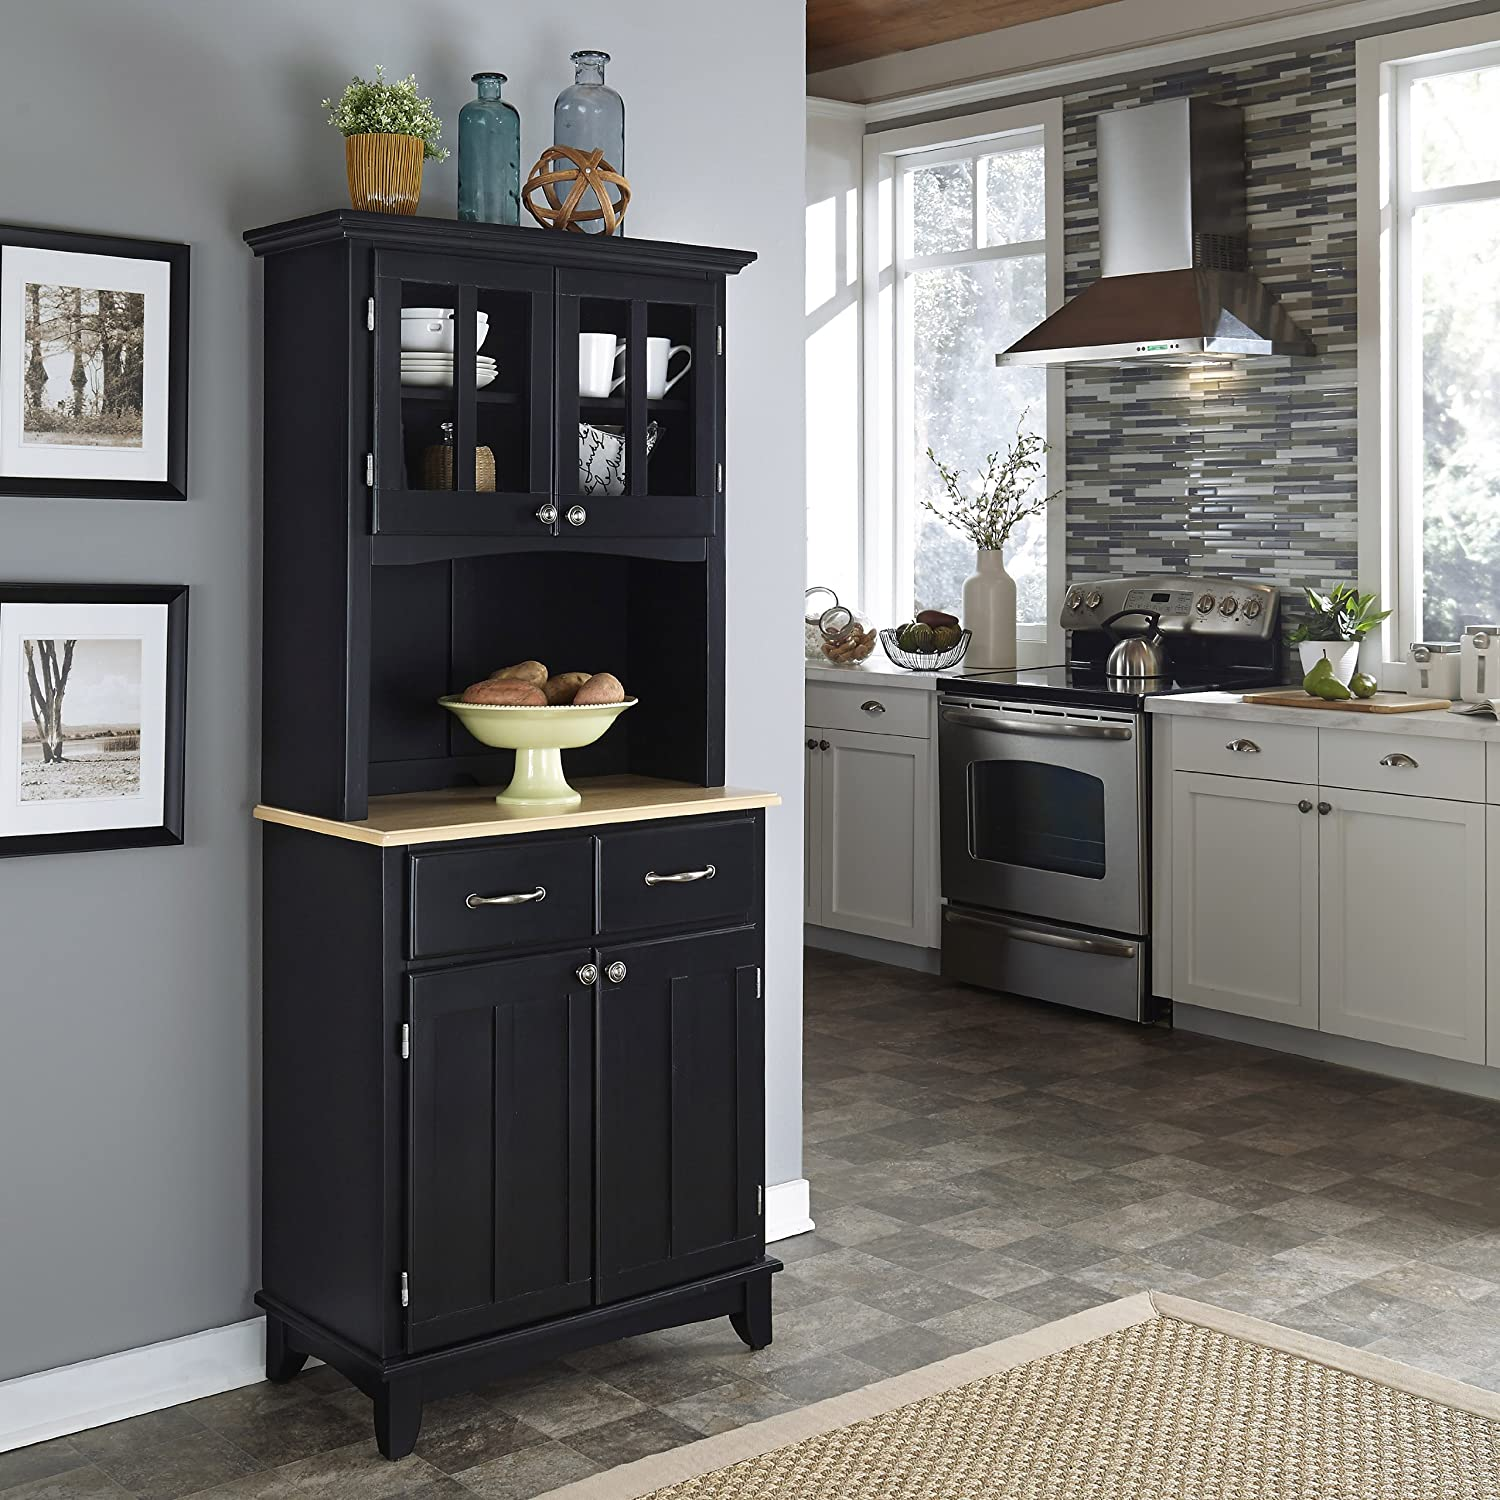 Amazon.com: Home Styles 5001-0041-42 5001 Series Wood Top Buffet Server and  Hutch, Black, 29-1/4-Inch: Kitchen & Dining - Amazon.com: Home Styles 5001-0041-42 5001 Series Wood Top Buffet